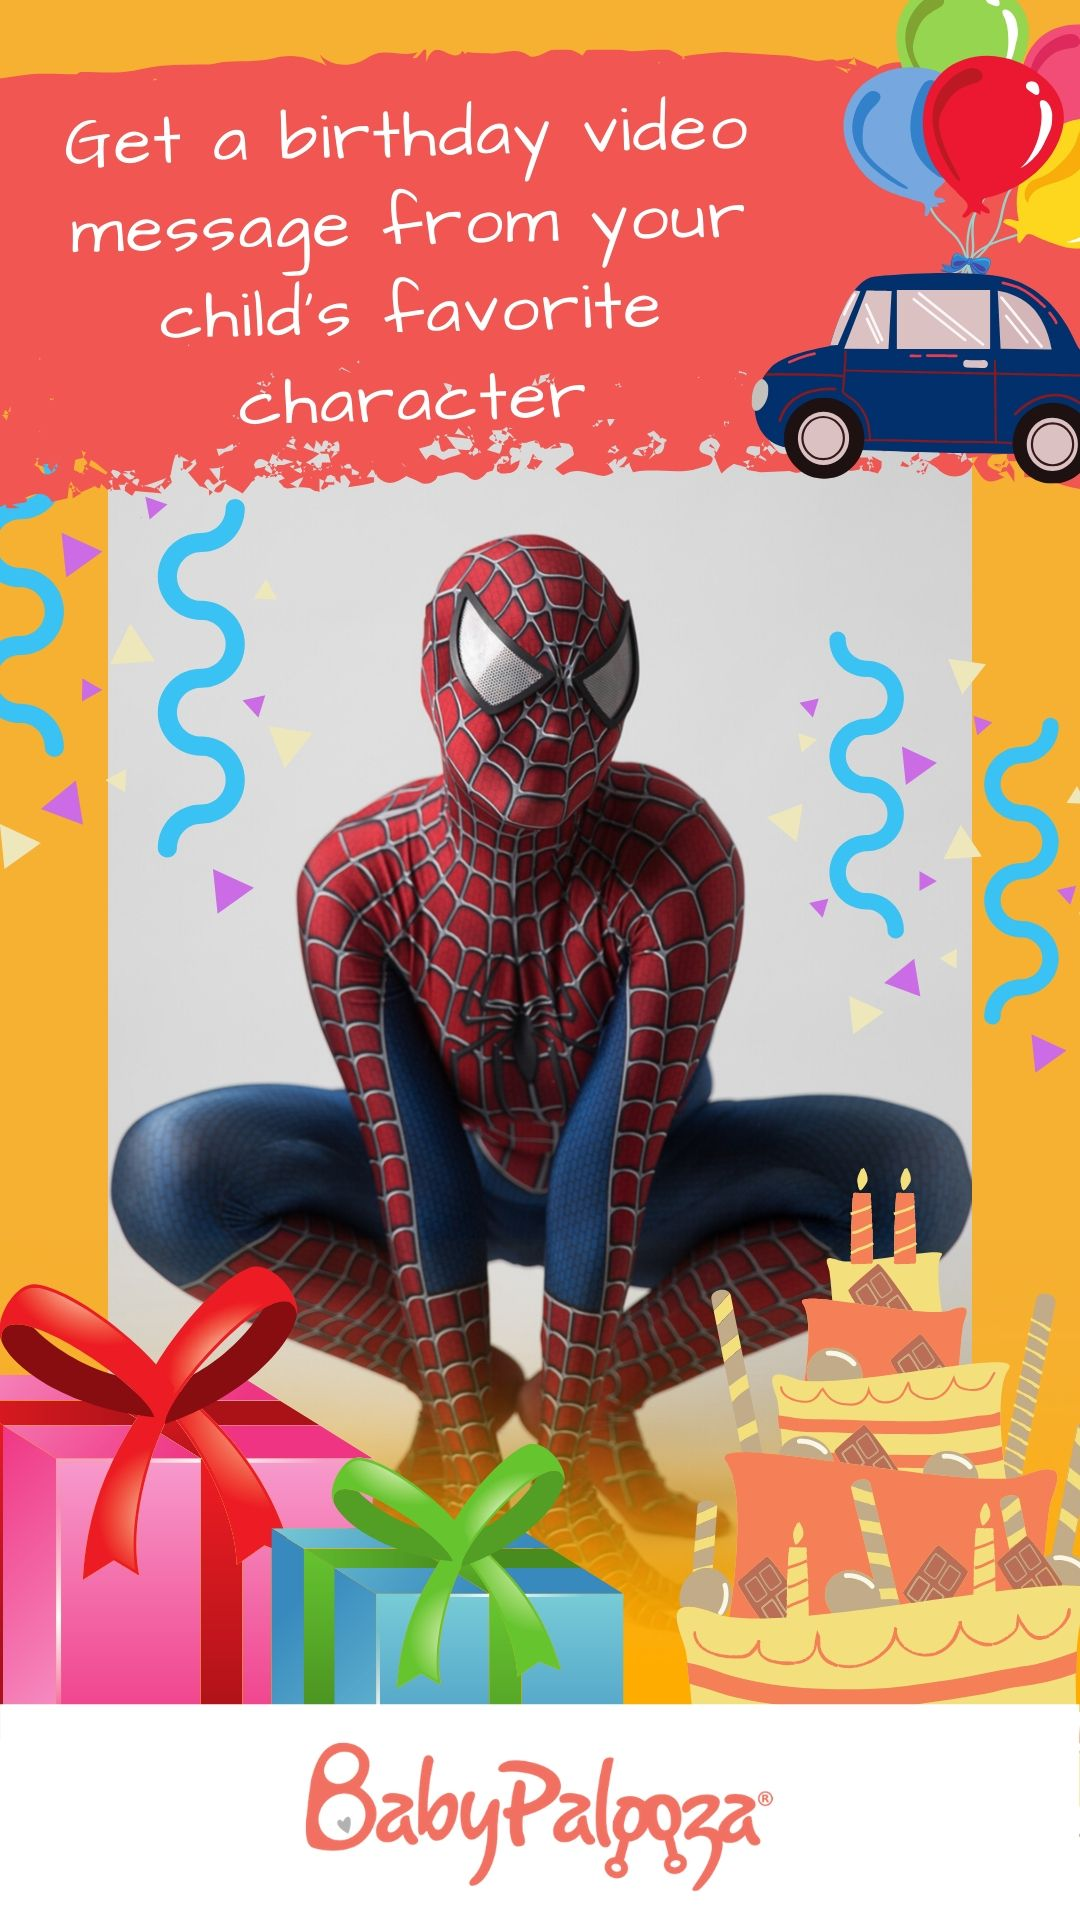 Get a Happy Birthday Wish from Your Favorite Character in